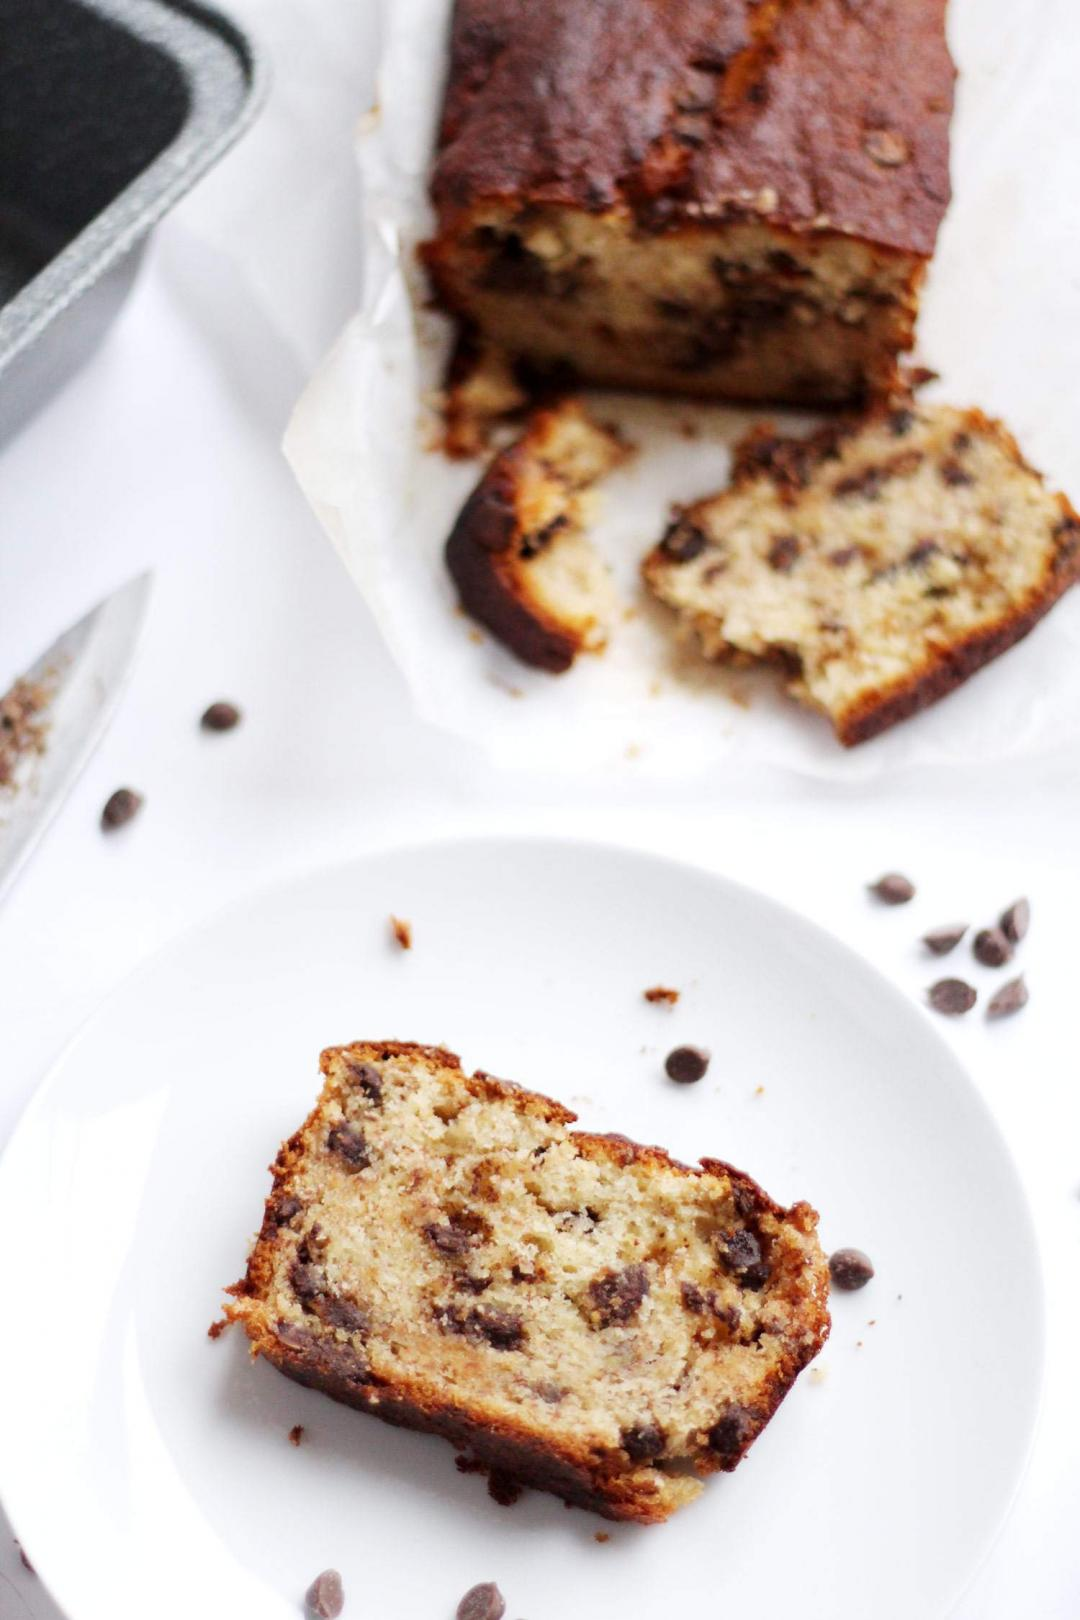 easy-chocolate-chip-banana-bread-recipe-loaf-baking-1